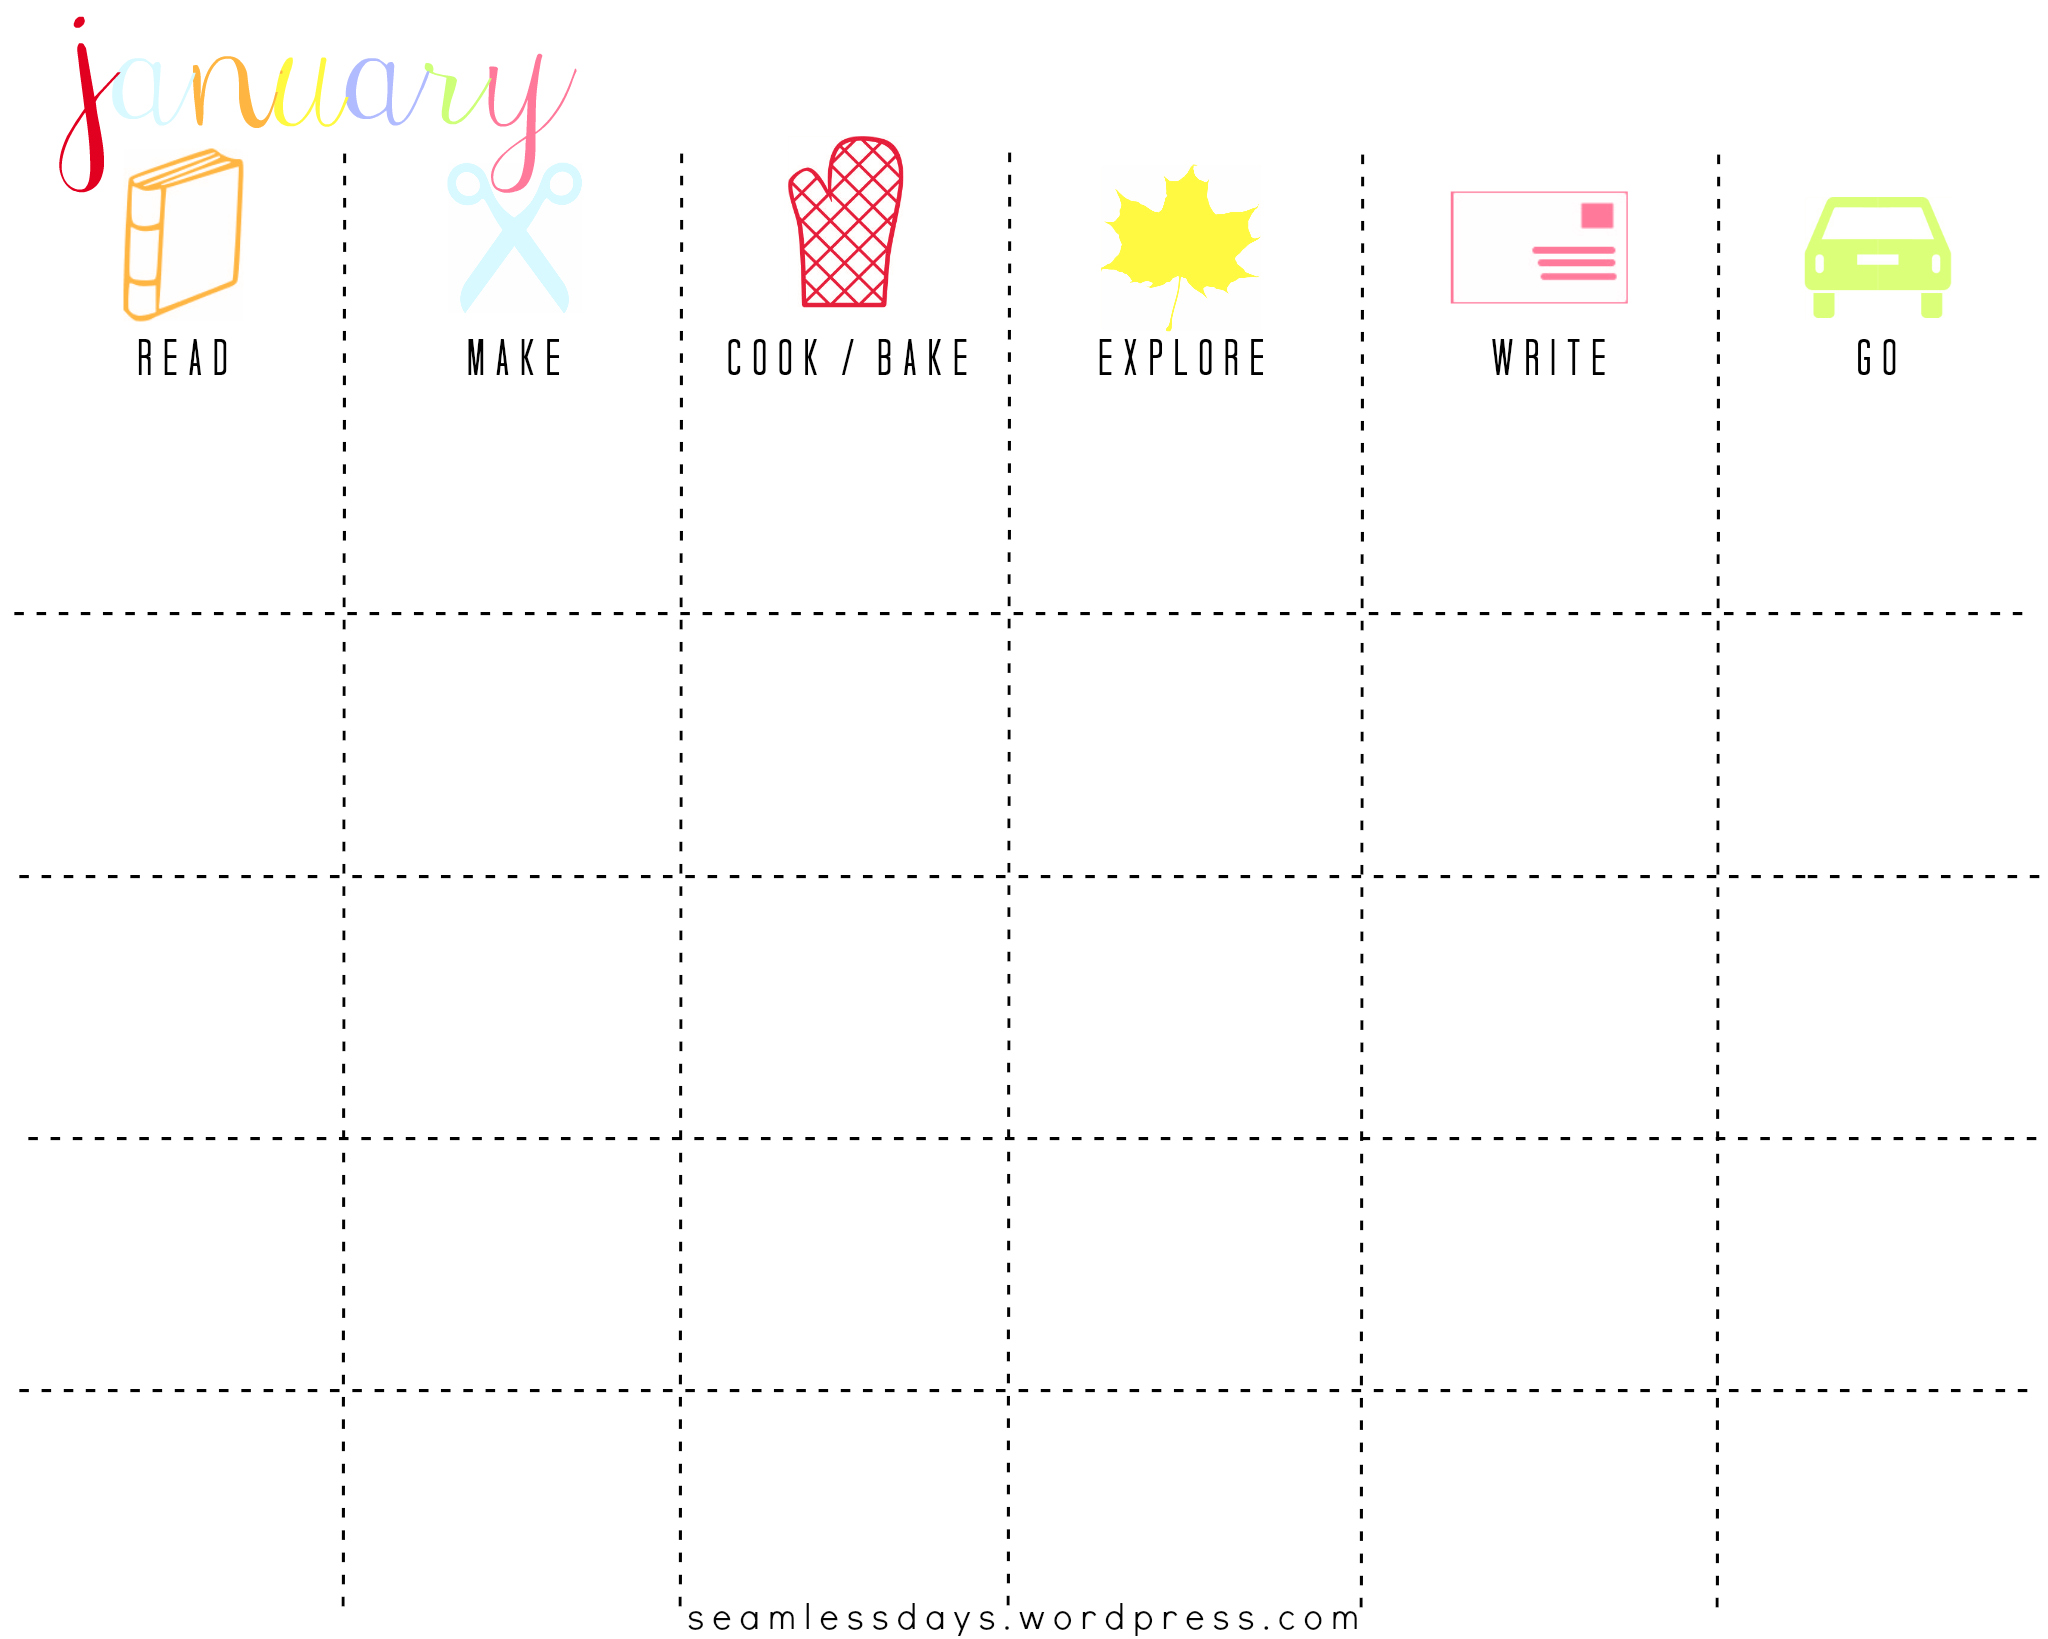 photo about Free Printable Family Planner titled Absolutely free Printable Household Enjoyable Planner listening inside the litany